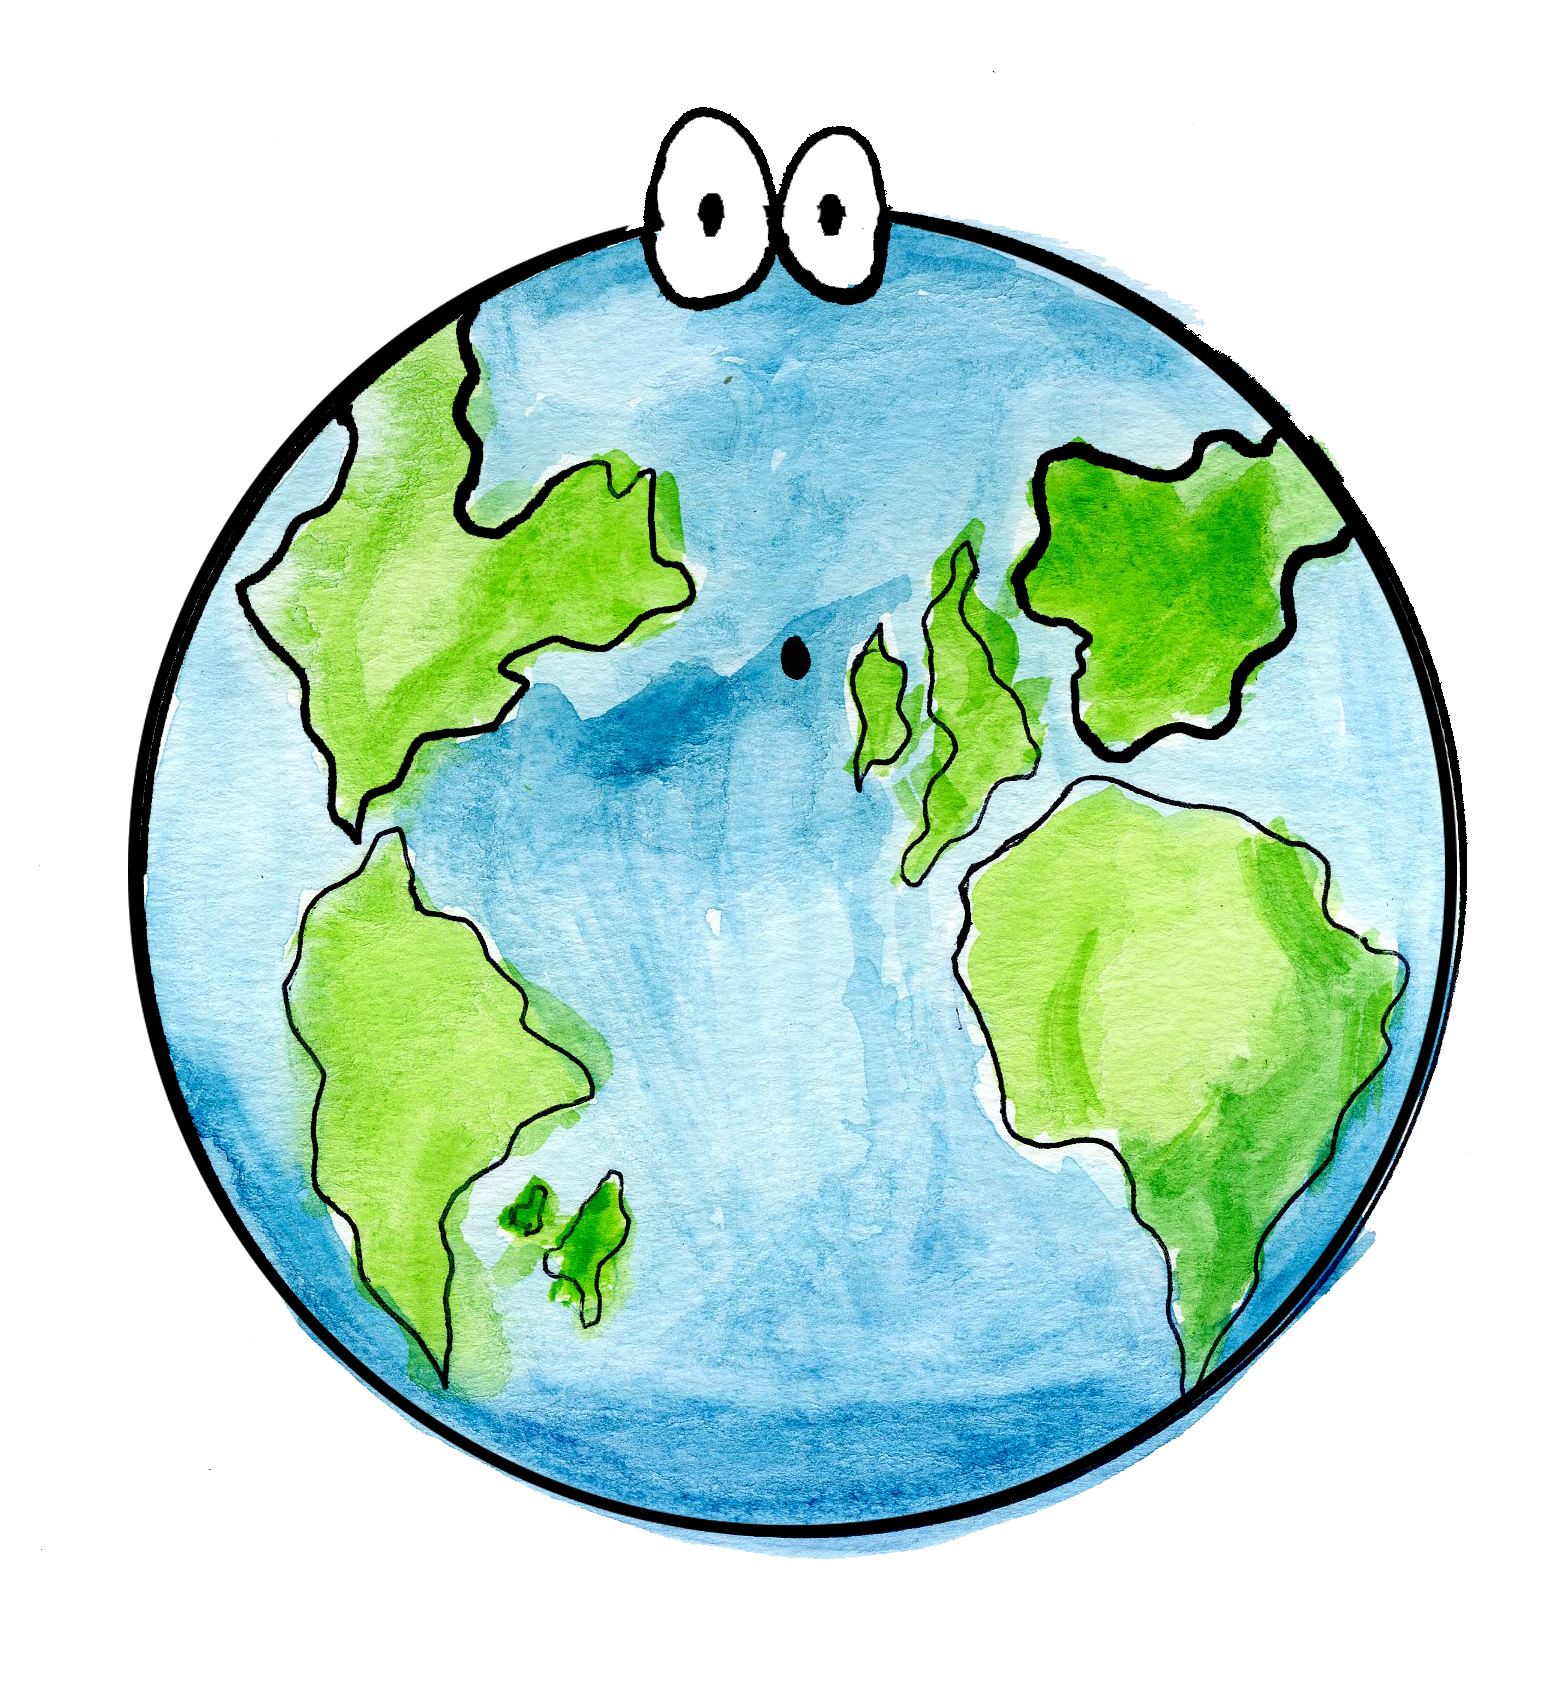 Drawn earth Are look Darvell exactly the